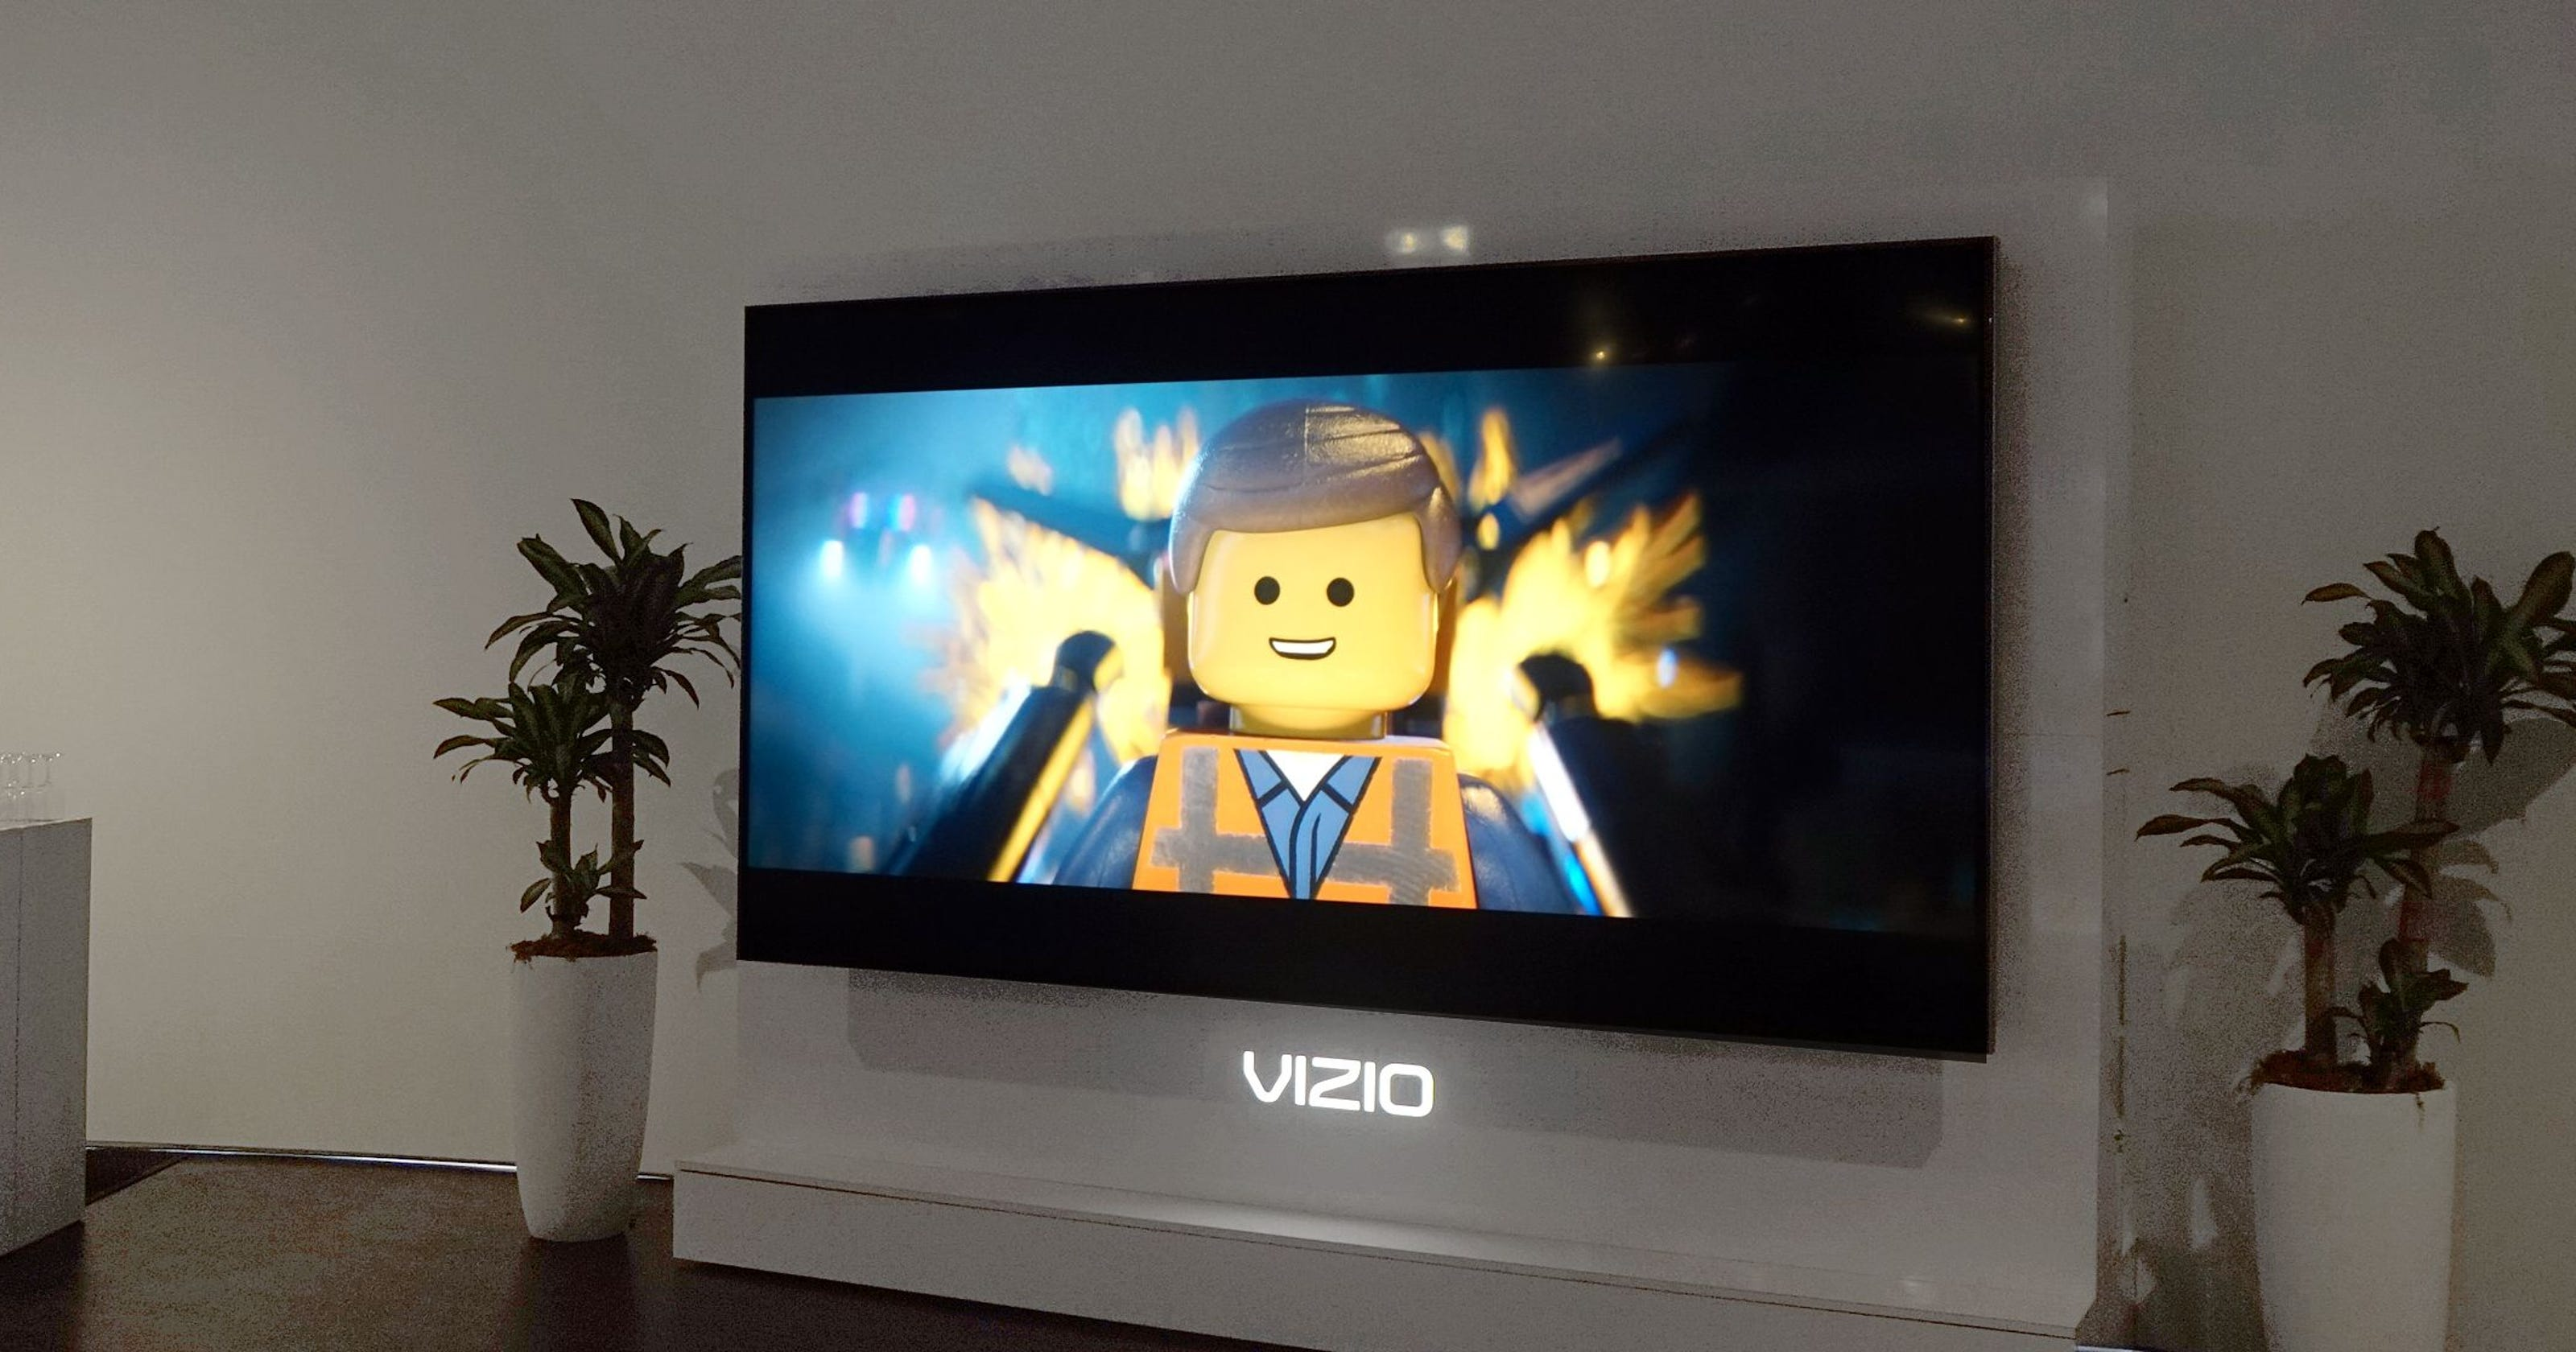 Vizio announces new budget and flagship 4K TVs